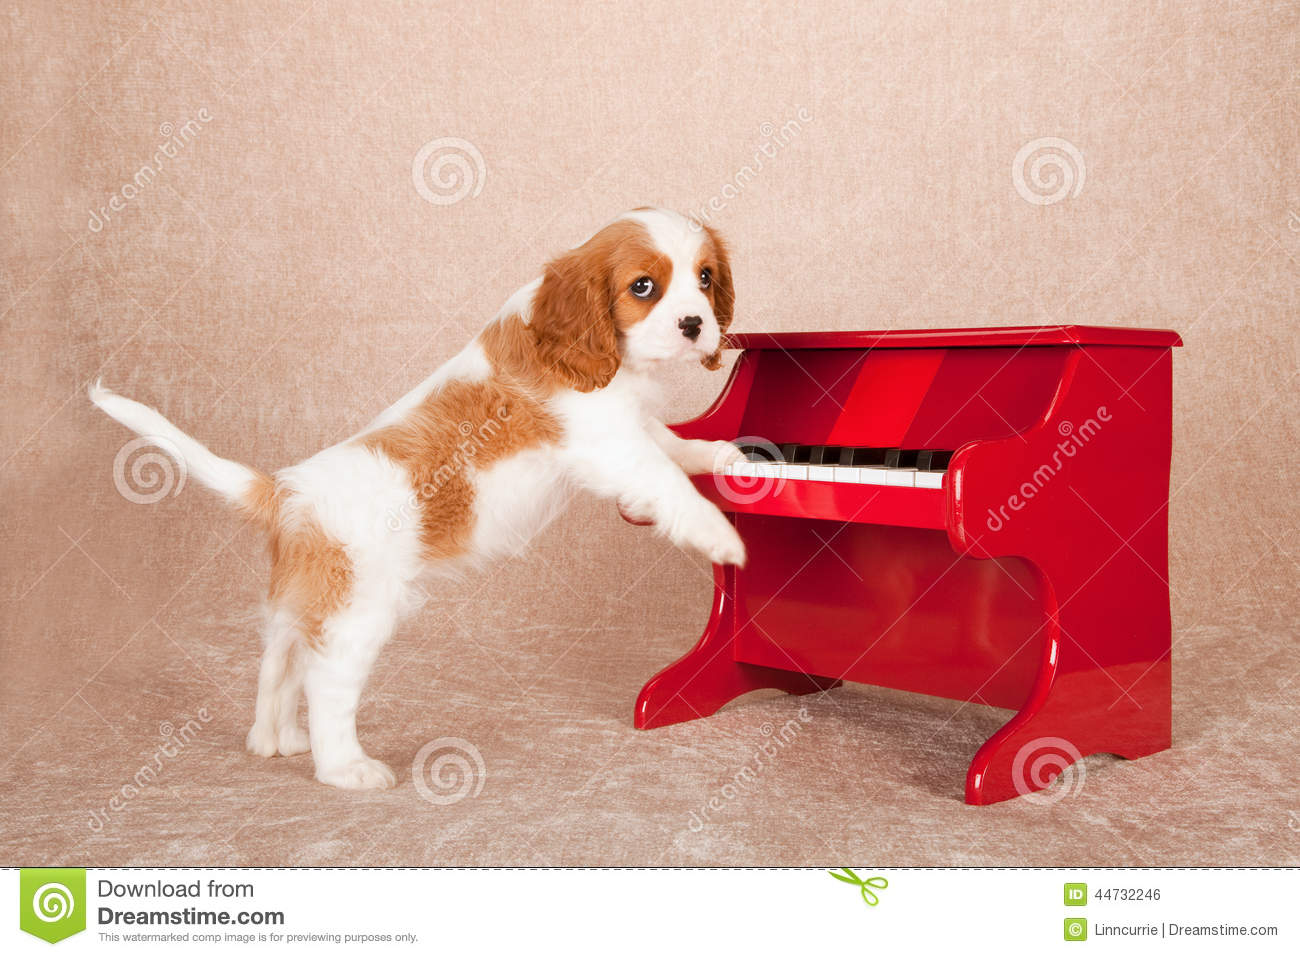 Stock photo cavalier king charles spaniel standing up against red toy